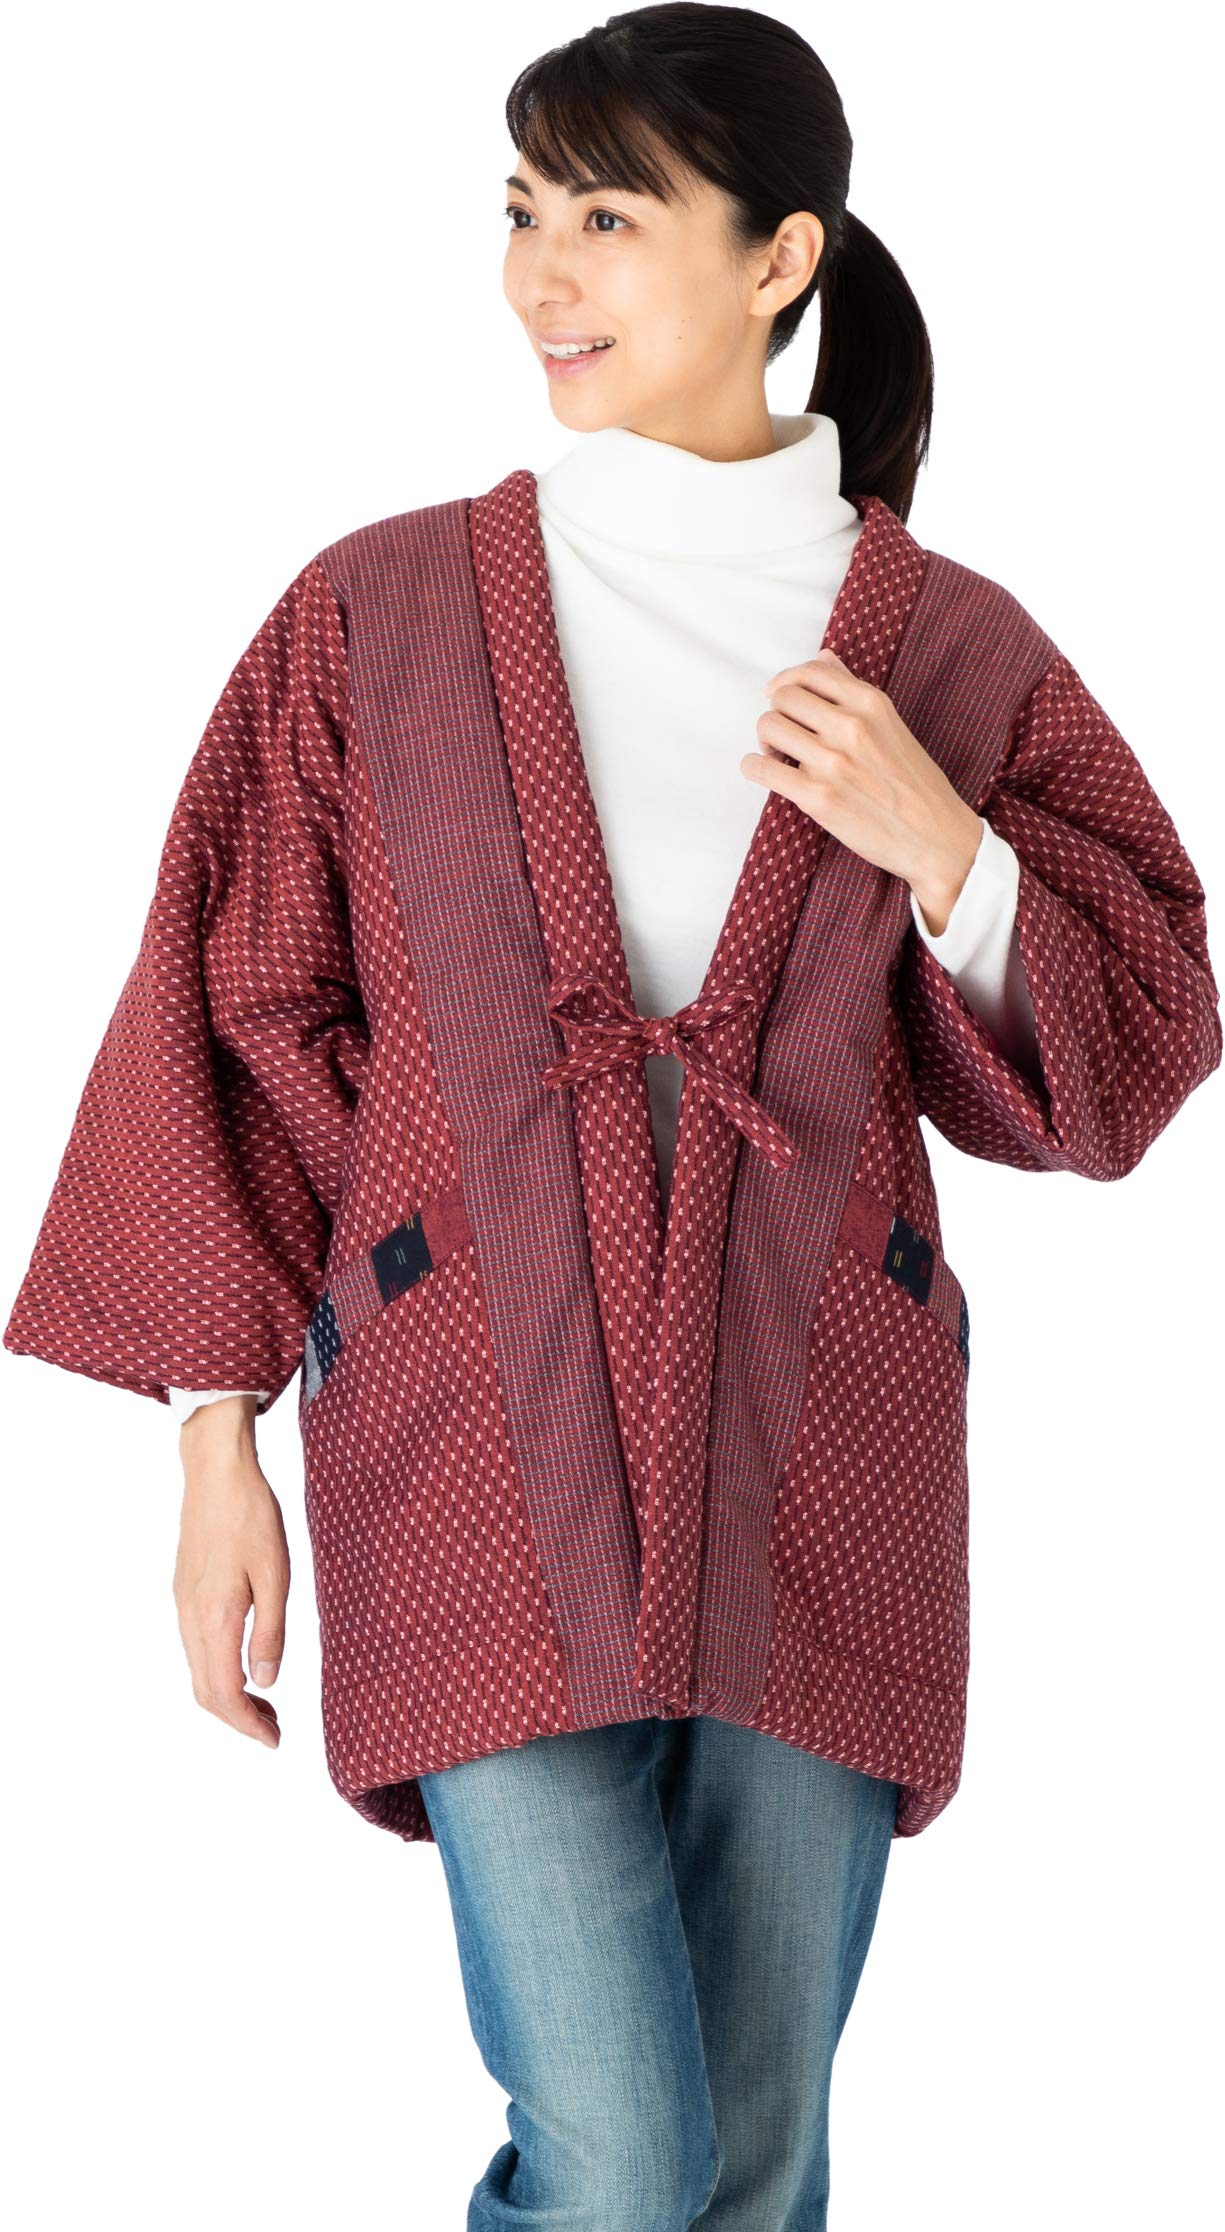 Hanten Cotton Jacket Made in Japan Kimono-Style Womens Red